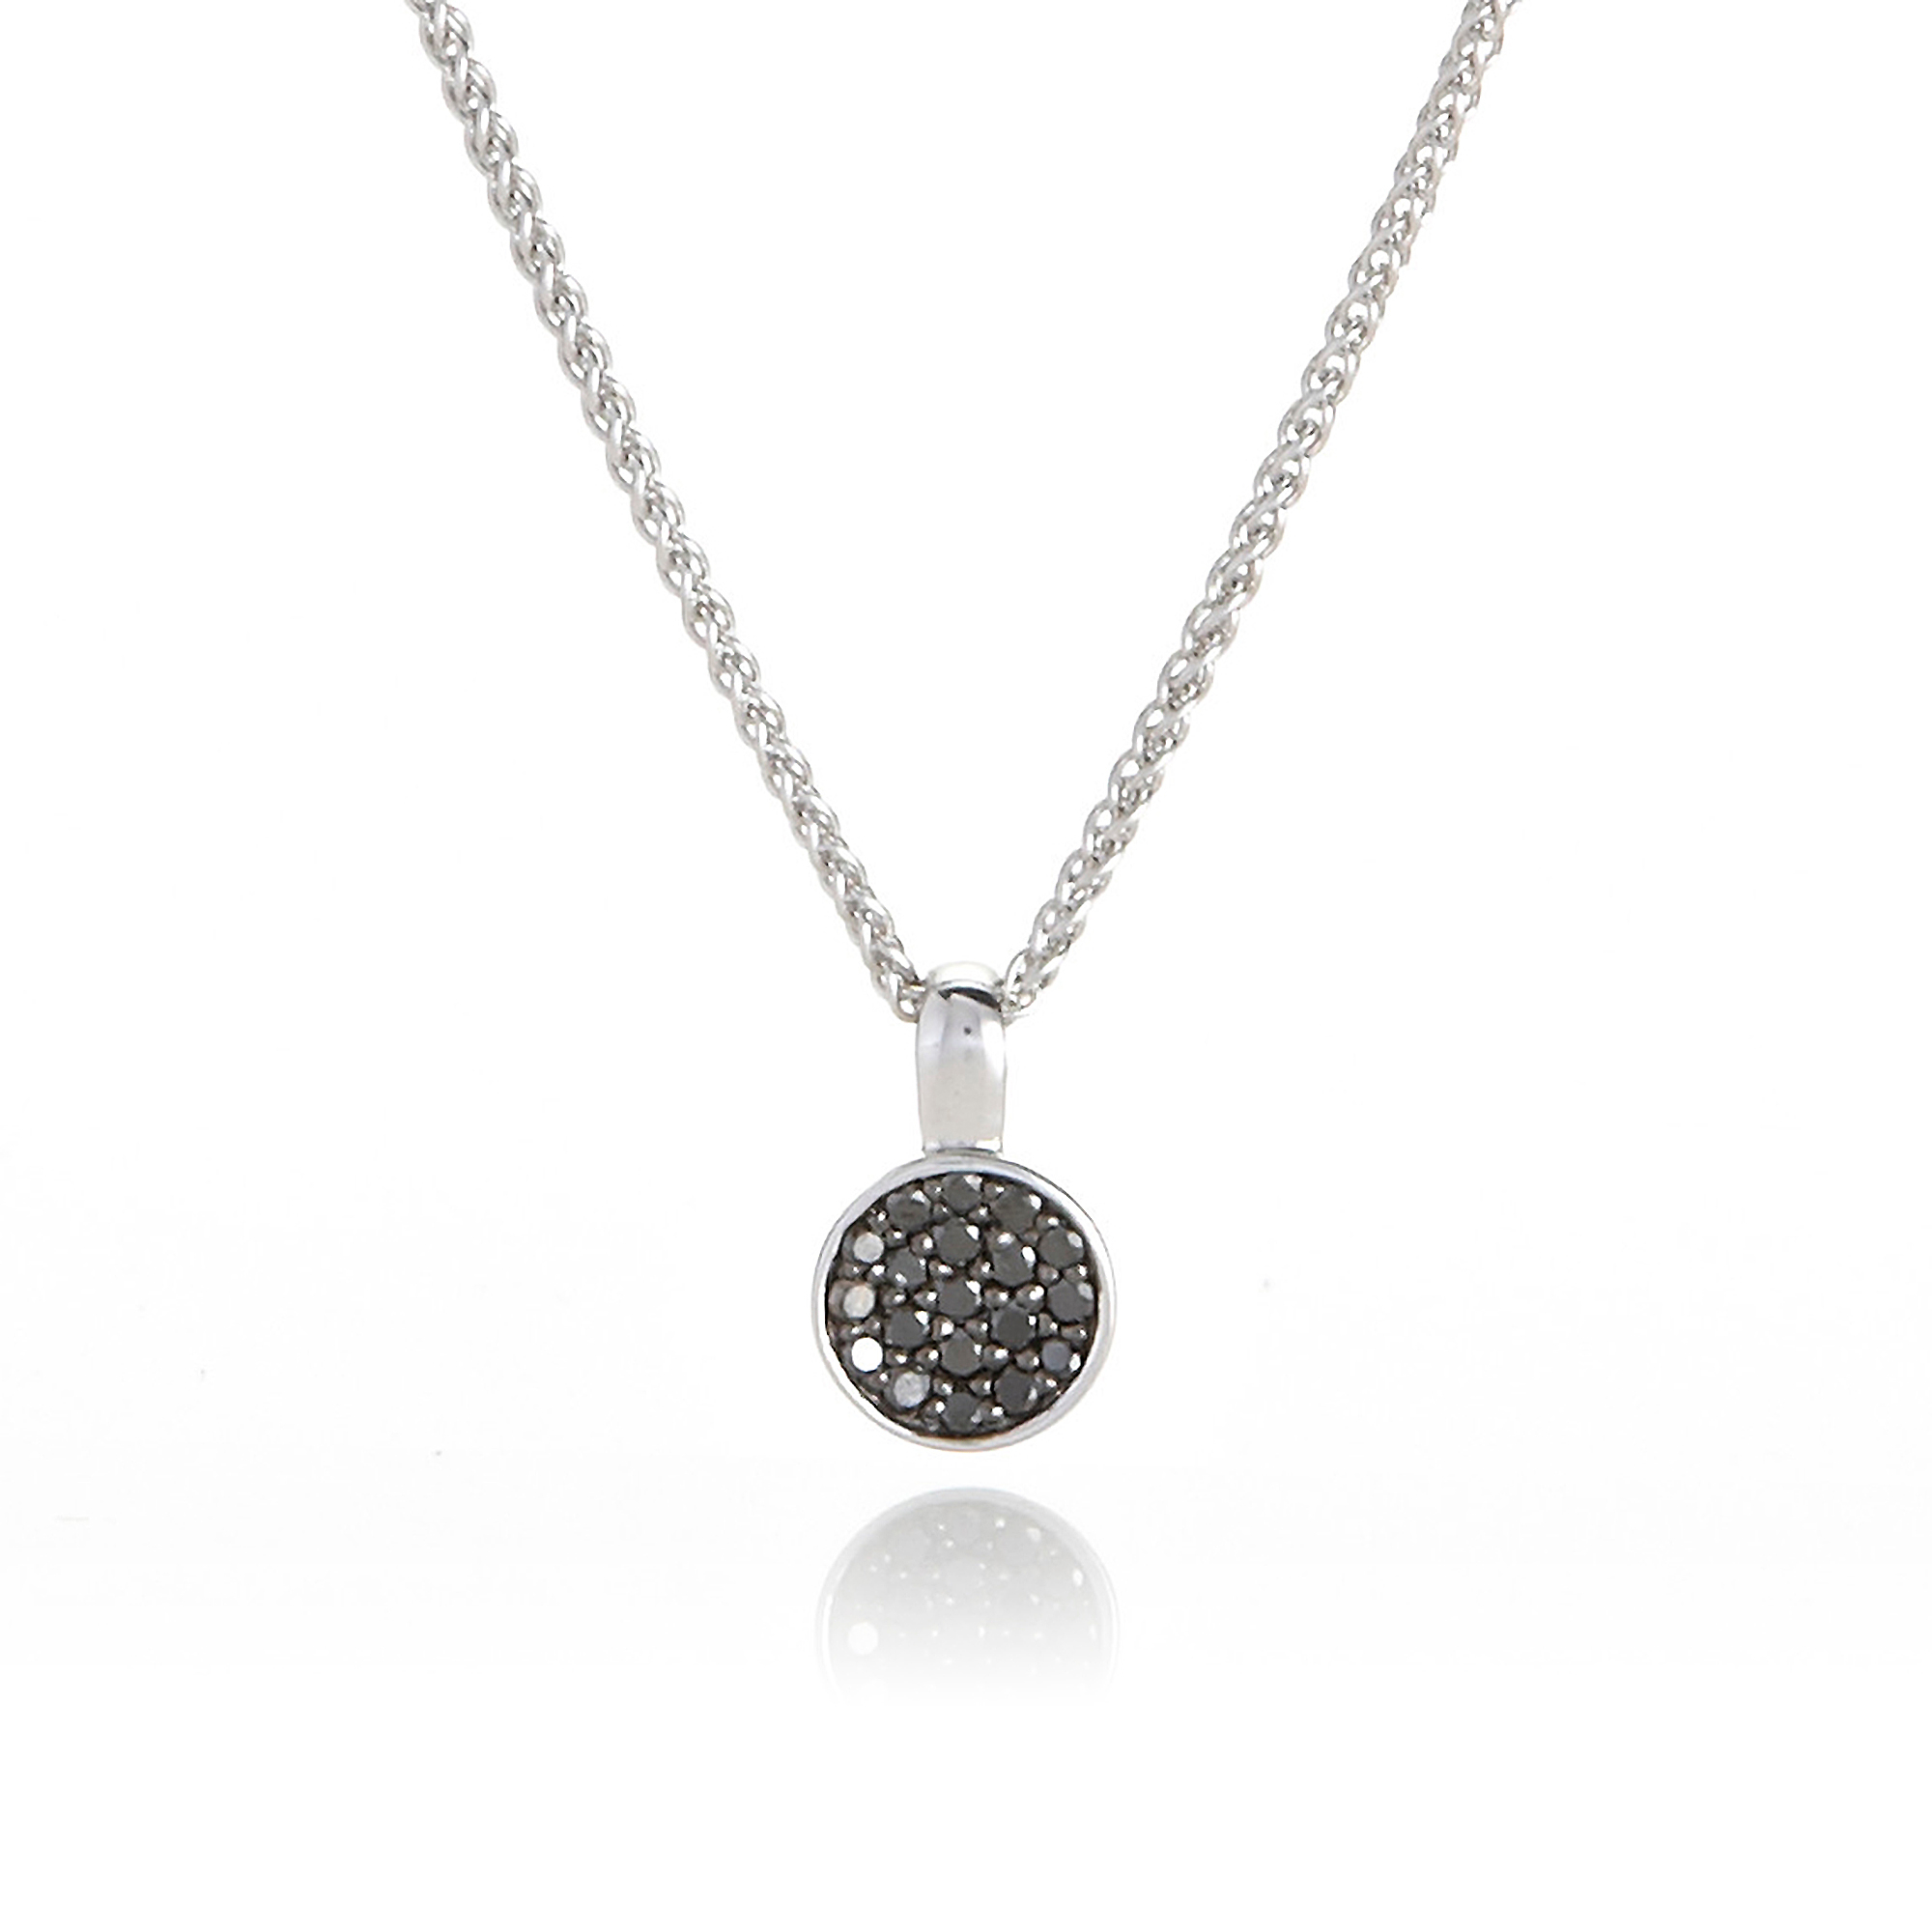 Gump's Pave Black Diamond Necklace